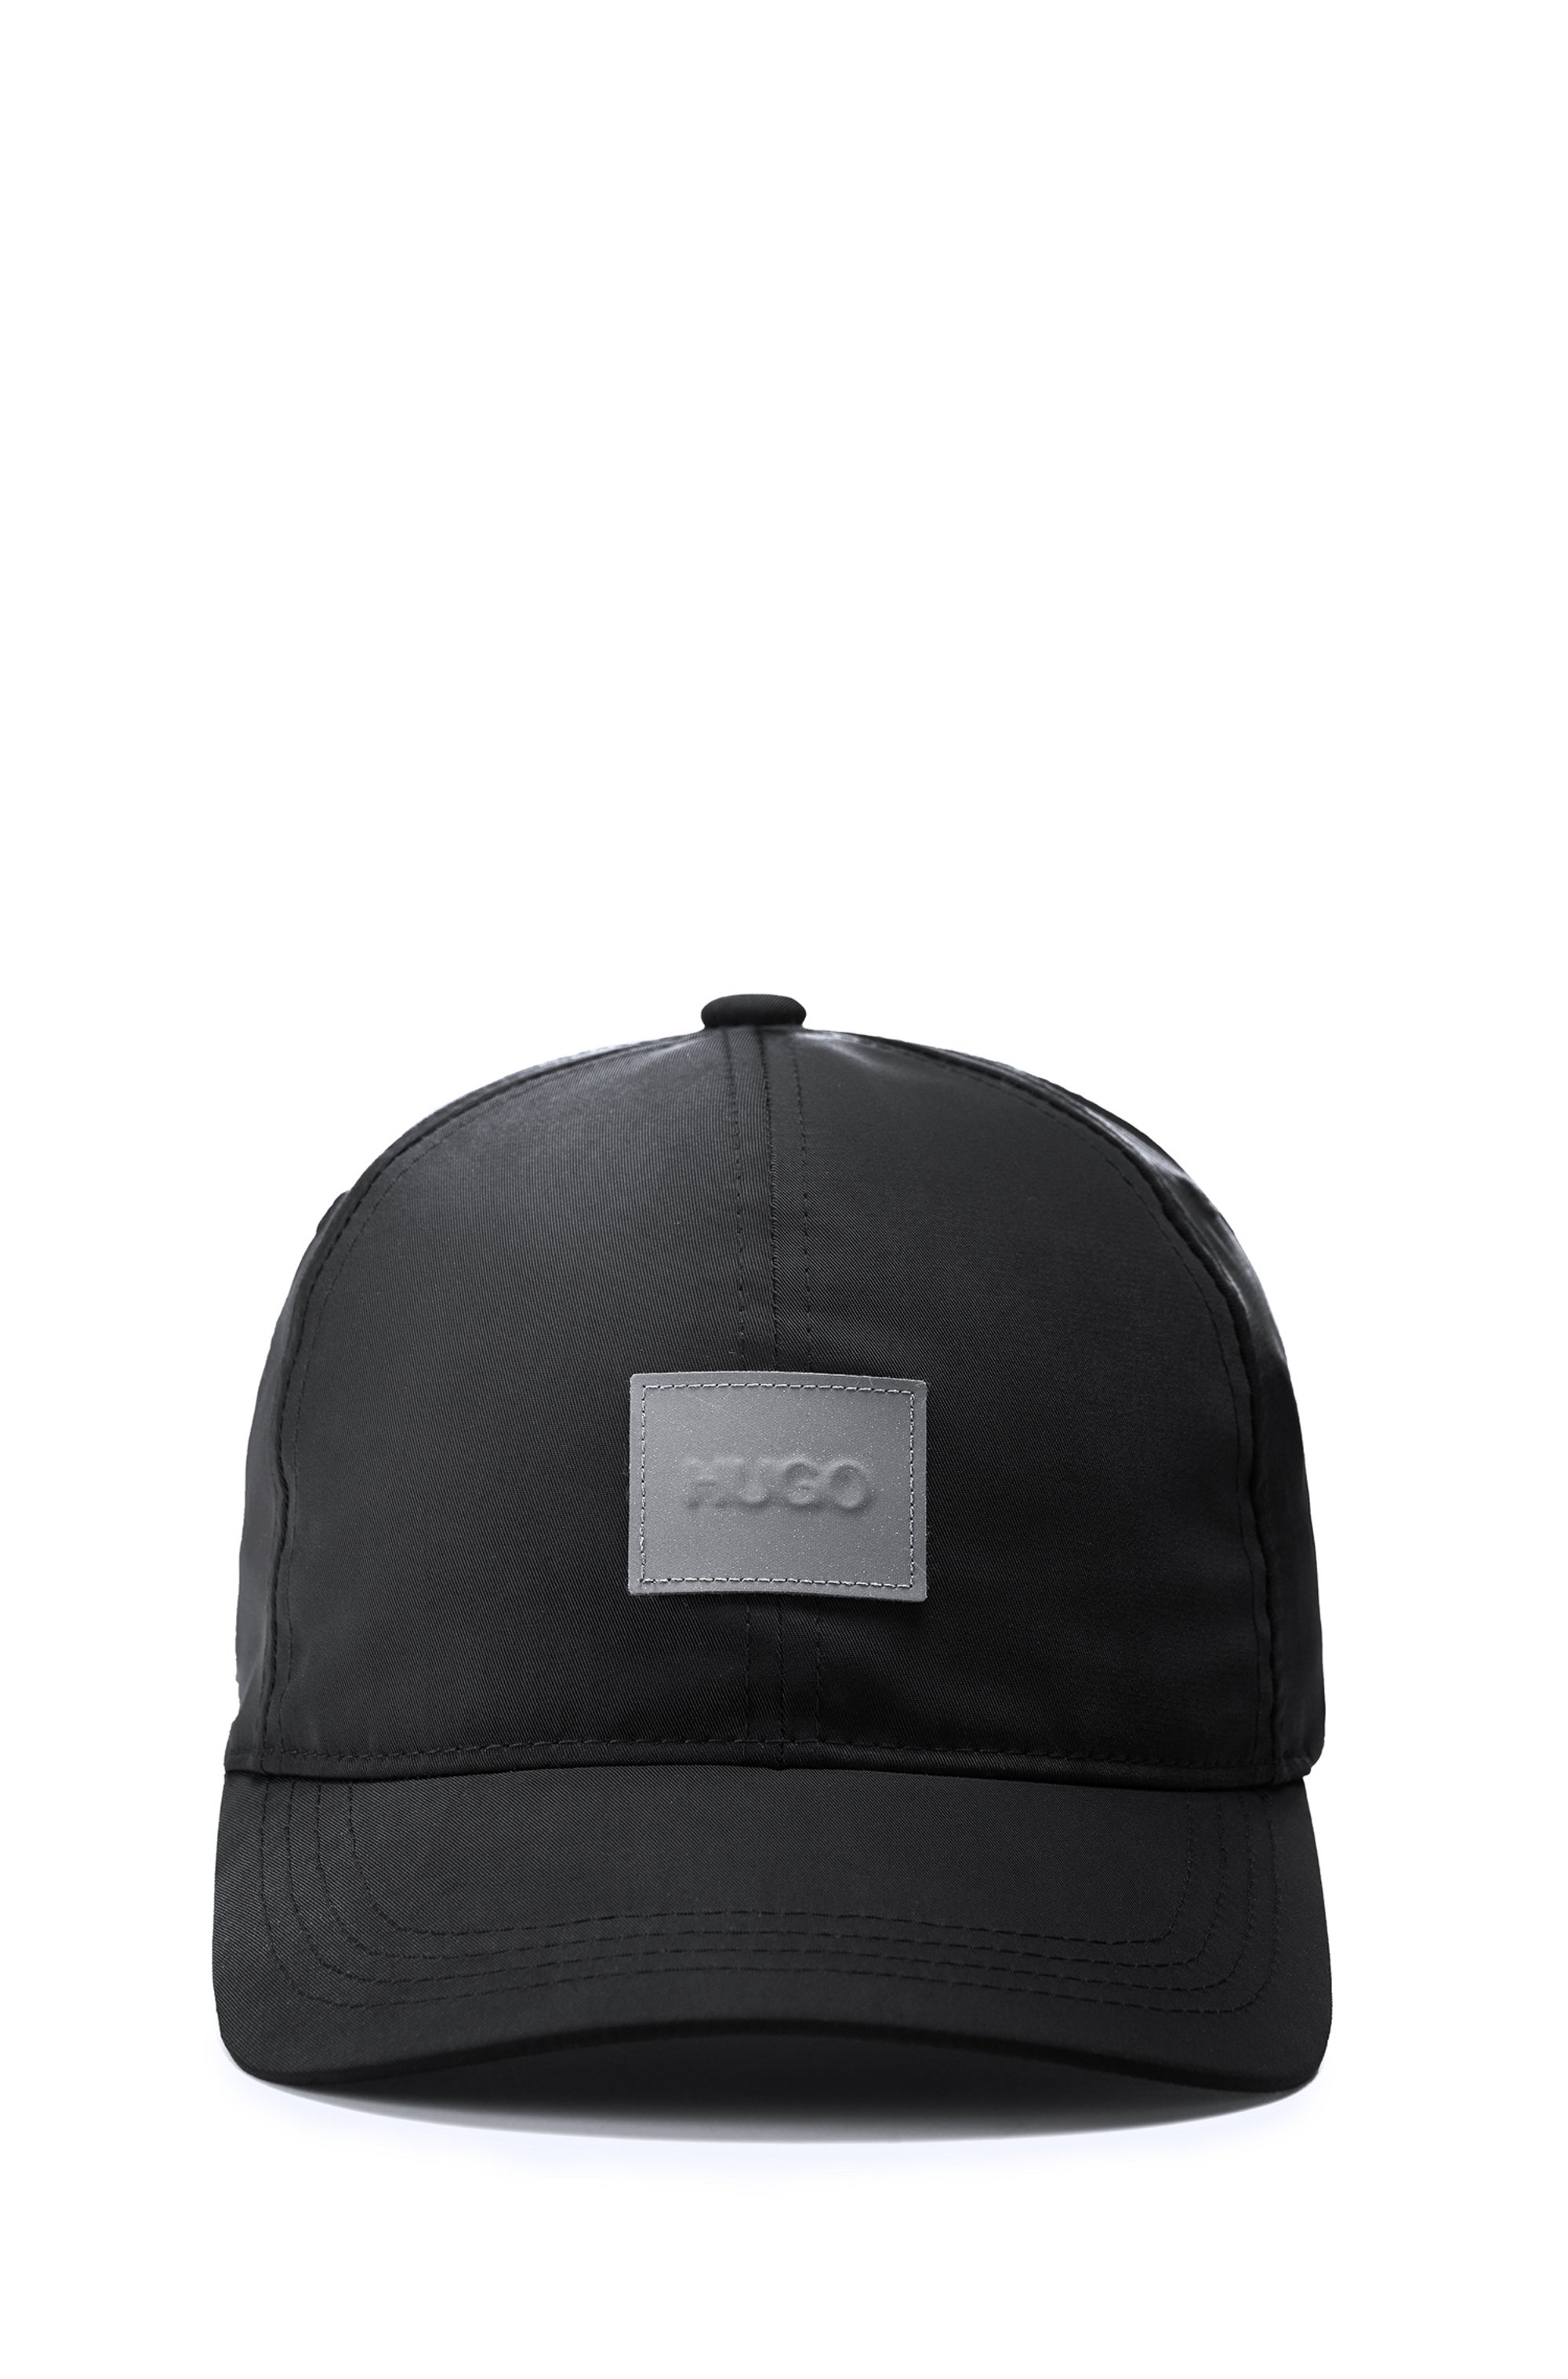 Nylon-twill cap with reflective logo patch